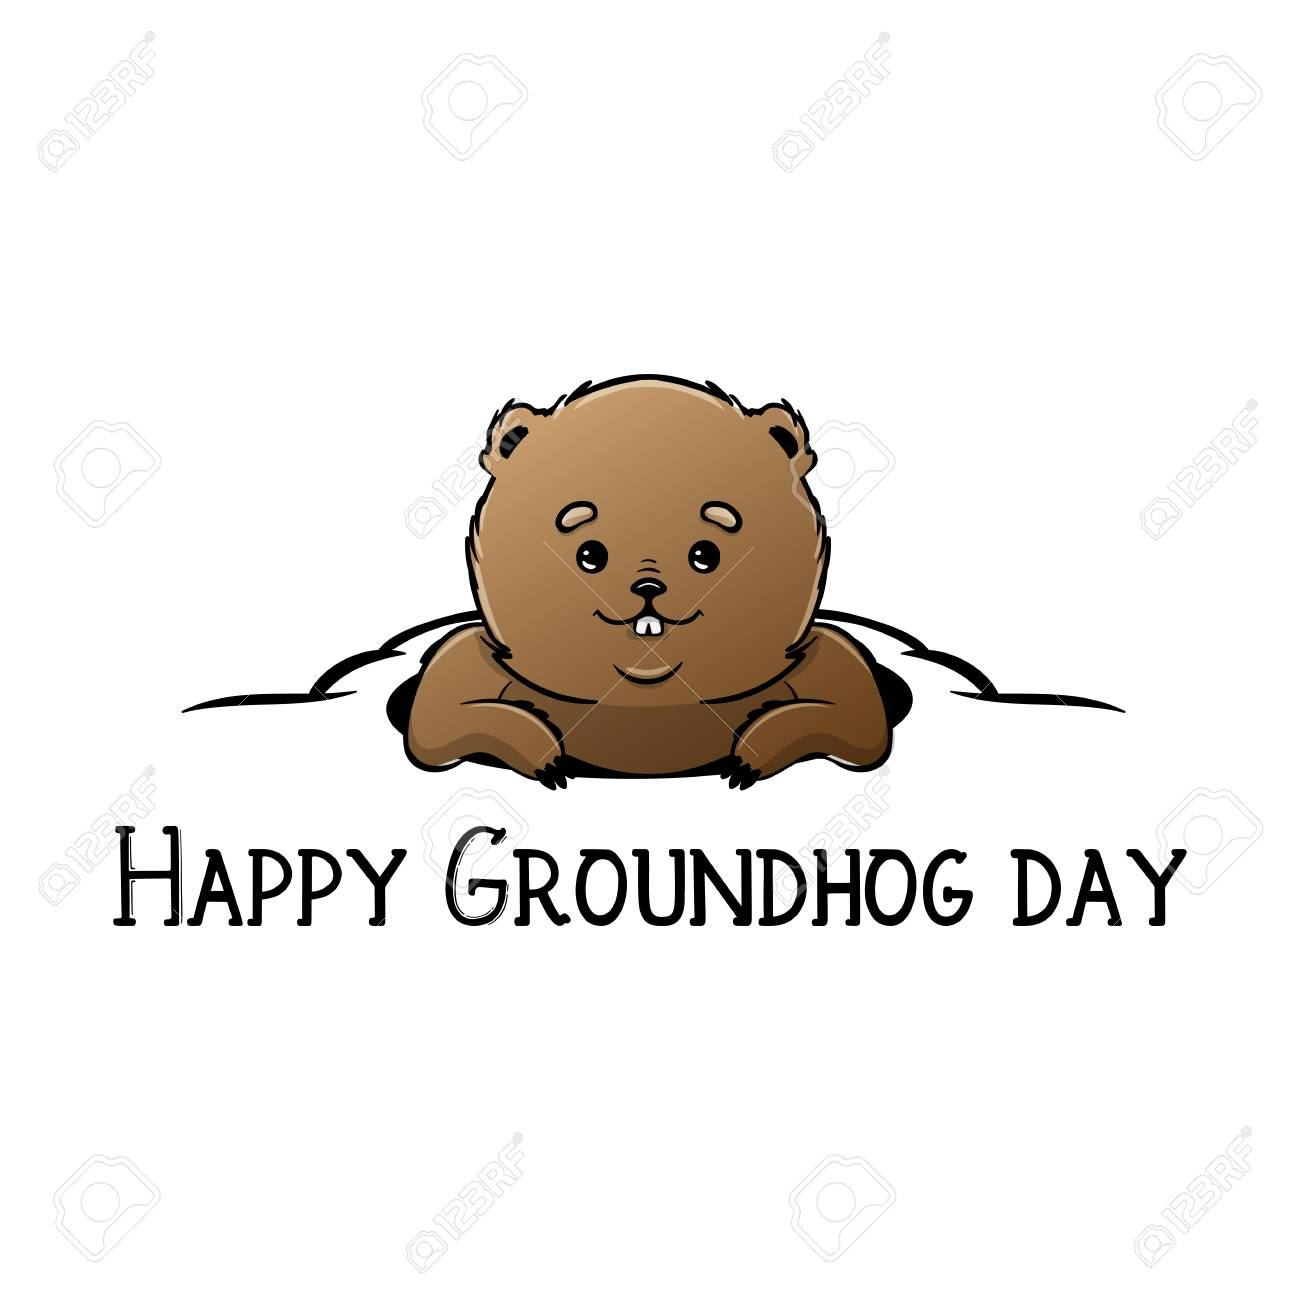 1684 Groundhog Stock Illustrations Cliparts And Royalty Free